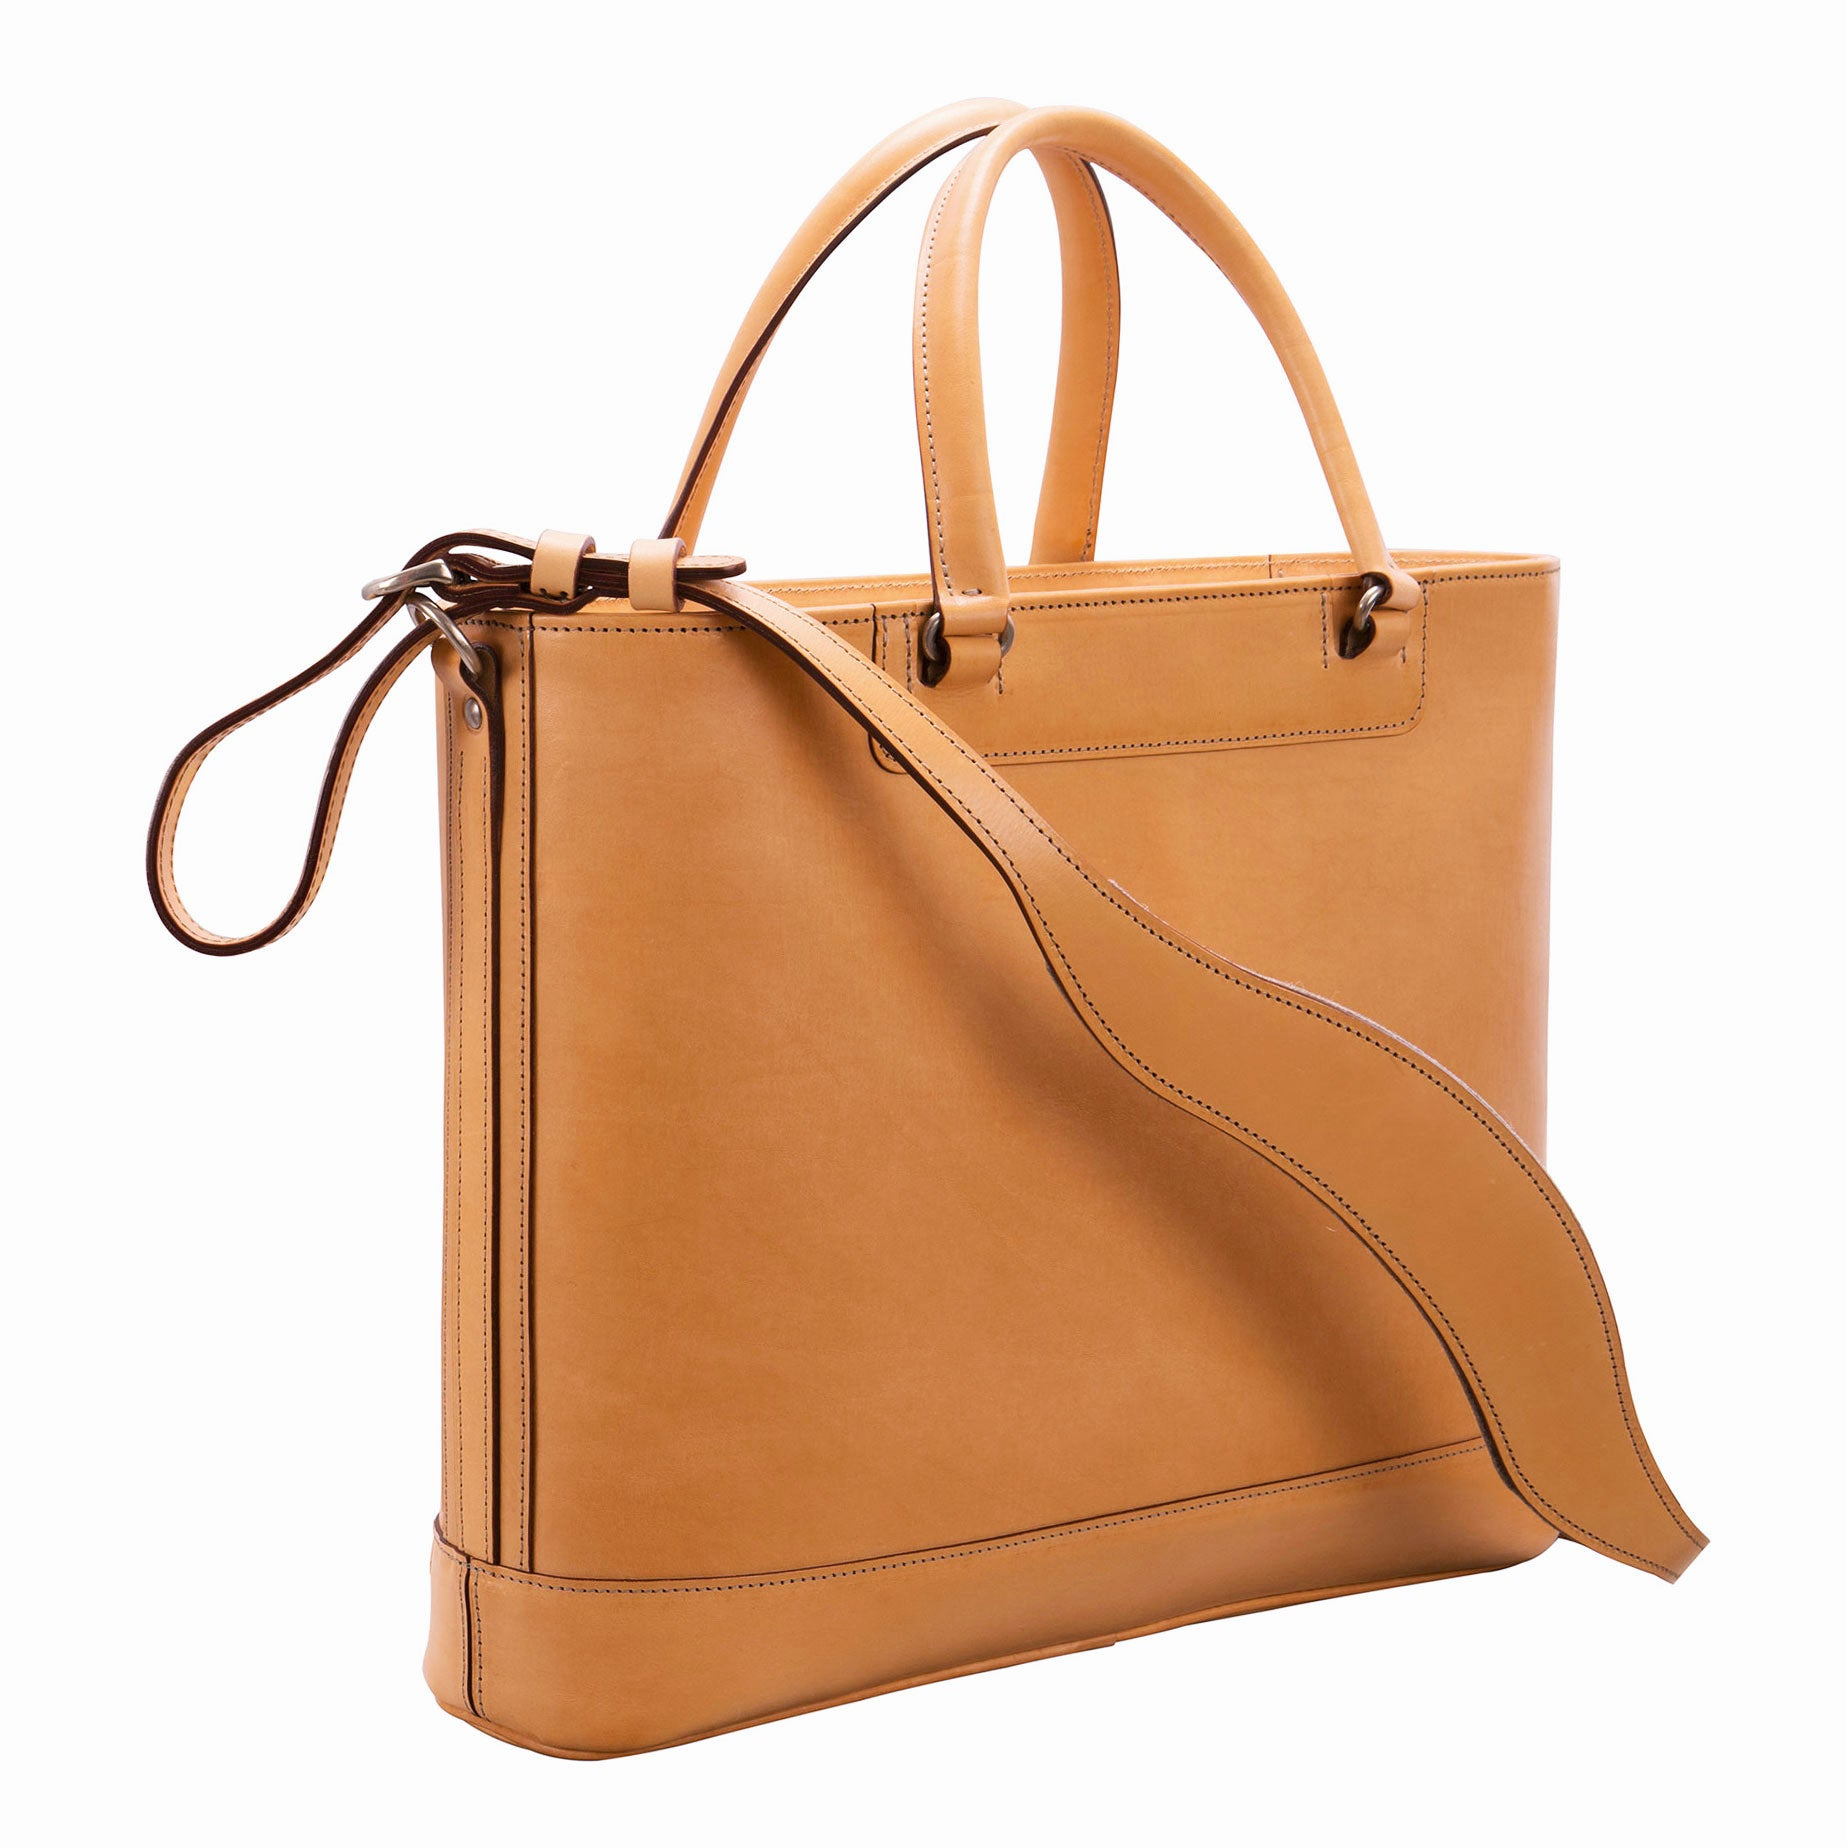 Glaser Designs Business Tote with Handles and Shoulder strap. Hand burnished Natural vegetable tanned leather. Solid brass hardware. Made to measure, custom sizes.